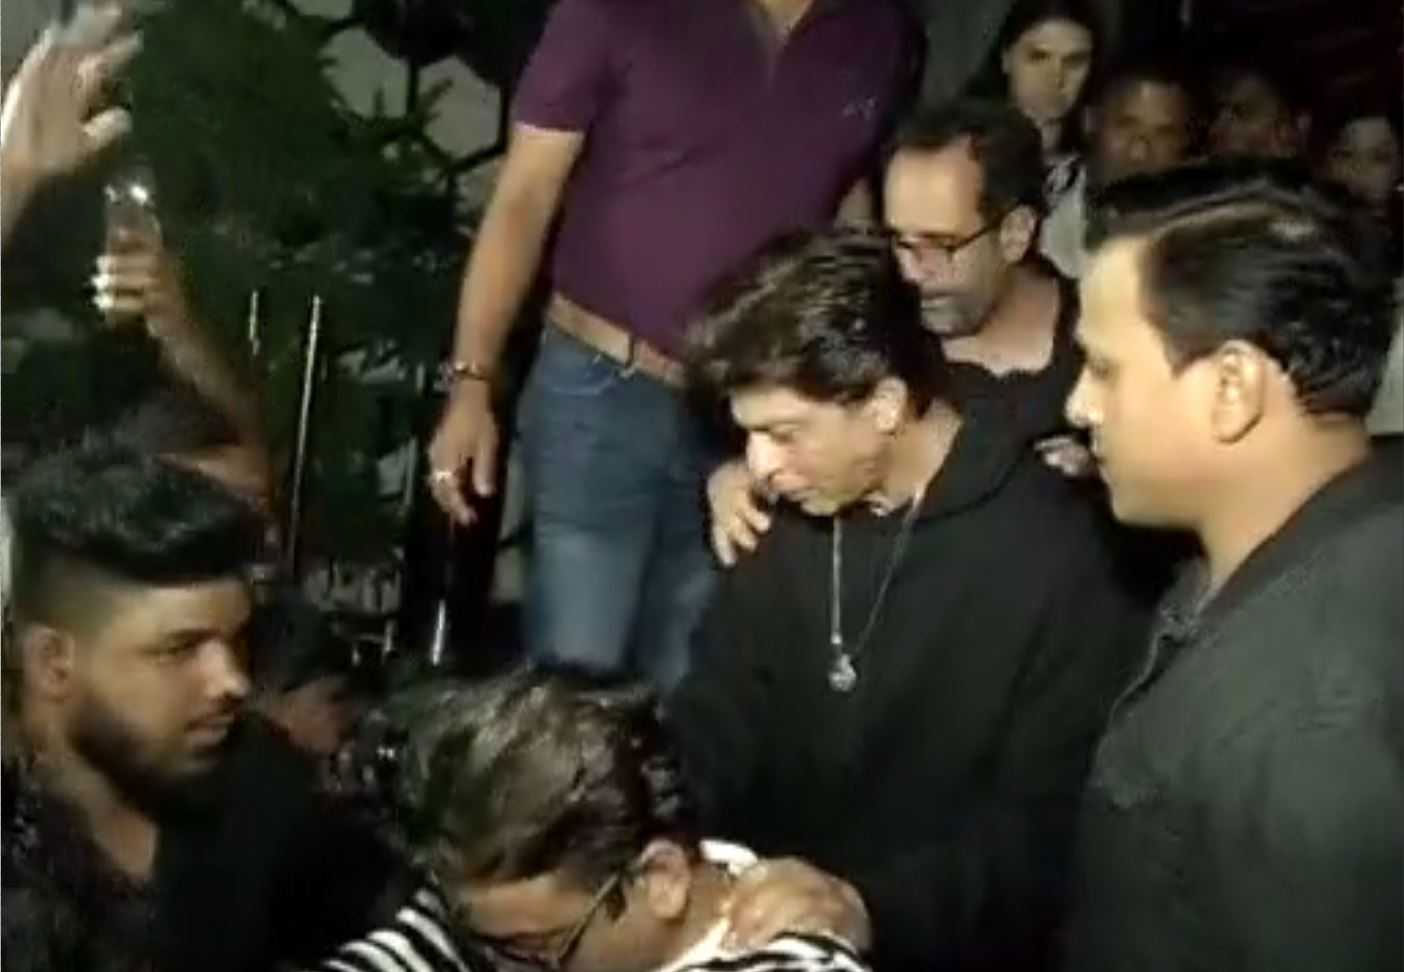 In Pics: Shah Rukh Khan's Birthday Bash Busted by Cops